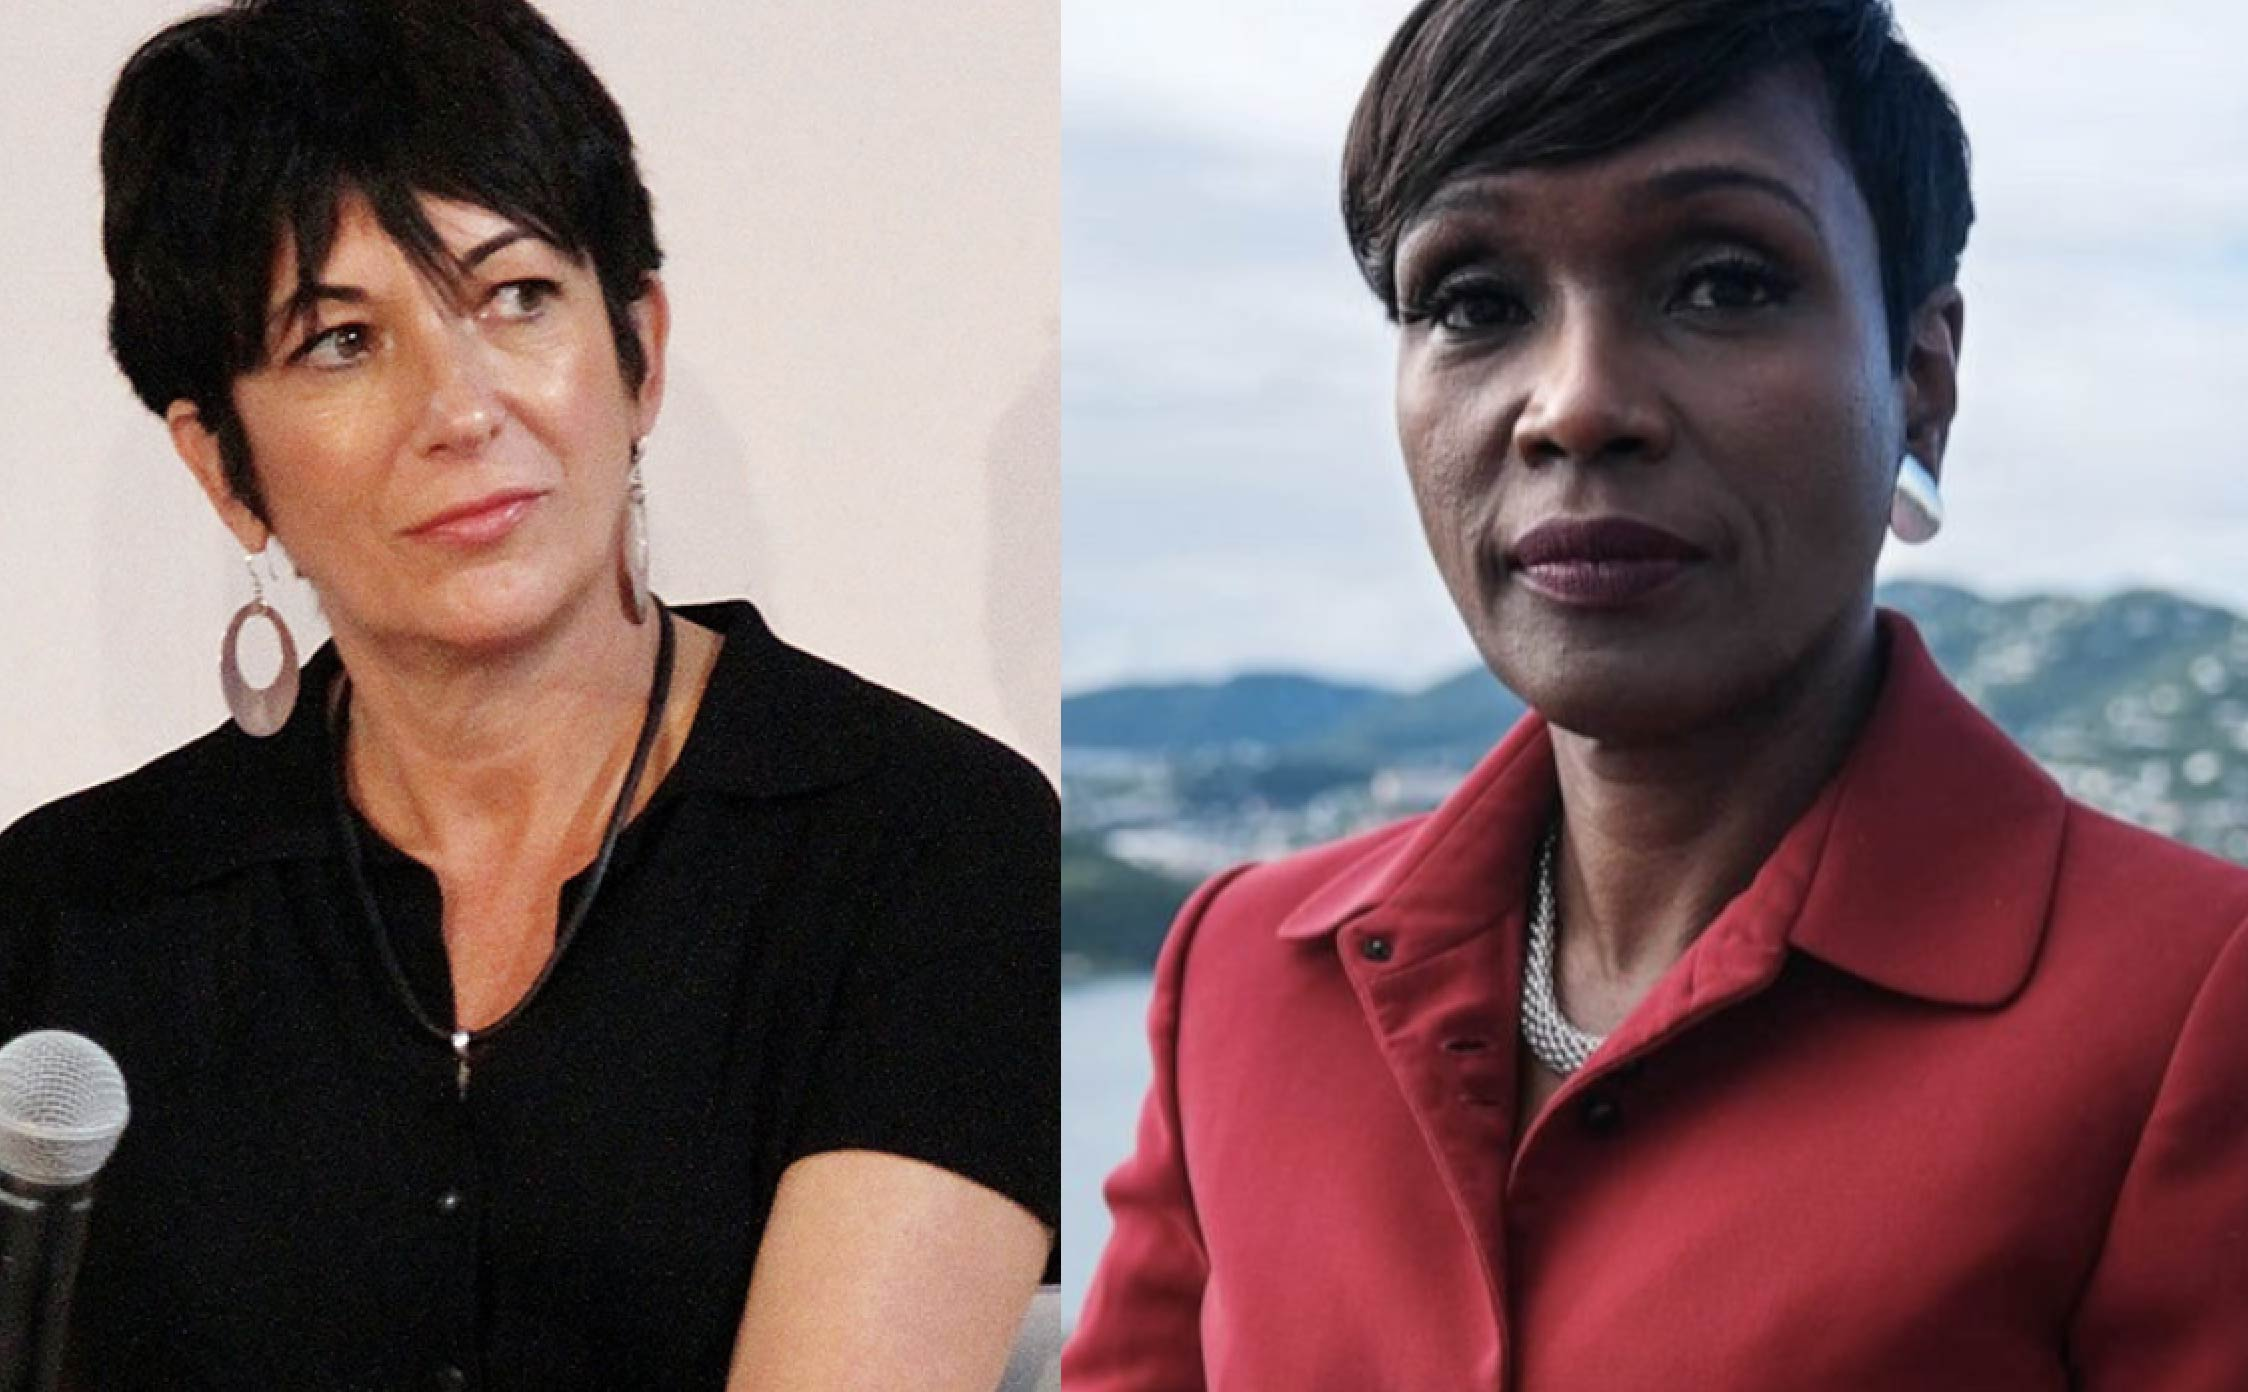 """Looks Like Ghislaine Maxwell's Sealed """"Sex Docs"""" Will be Released After All, Thanks to Pit Bull Lawyers Representing Virgin Islands"""